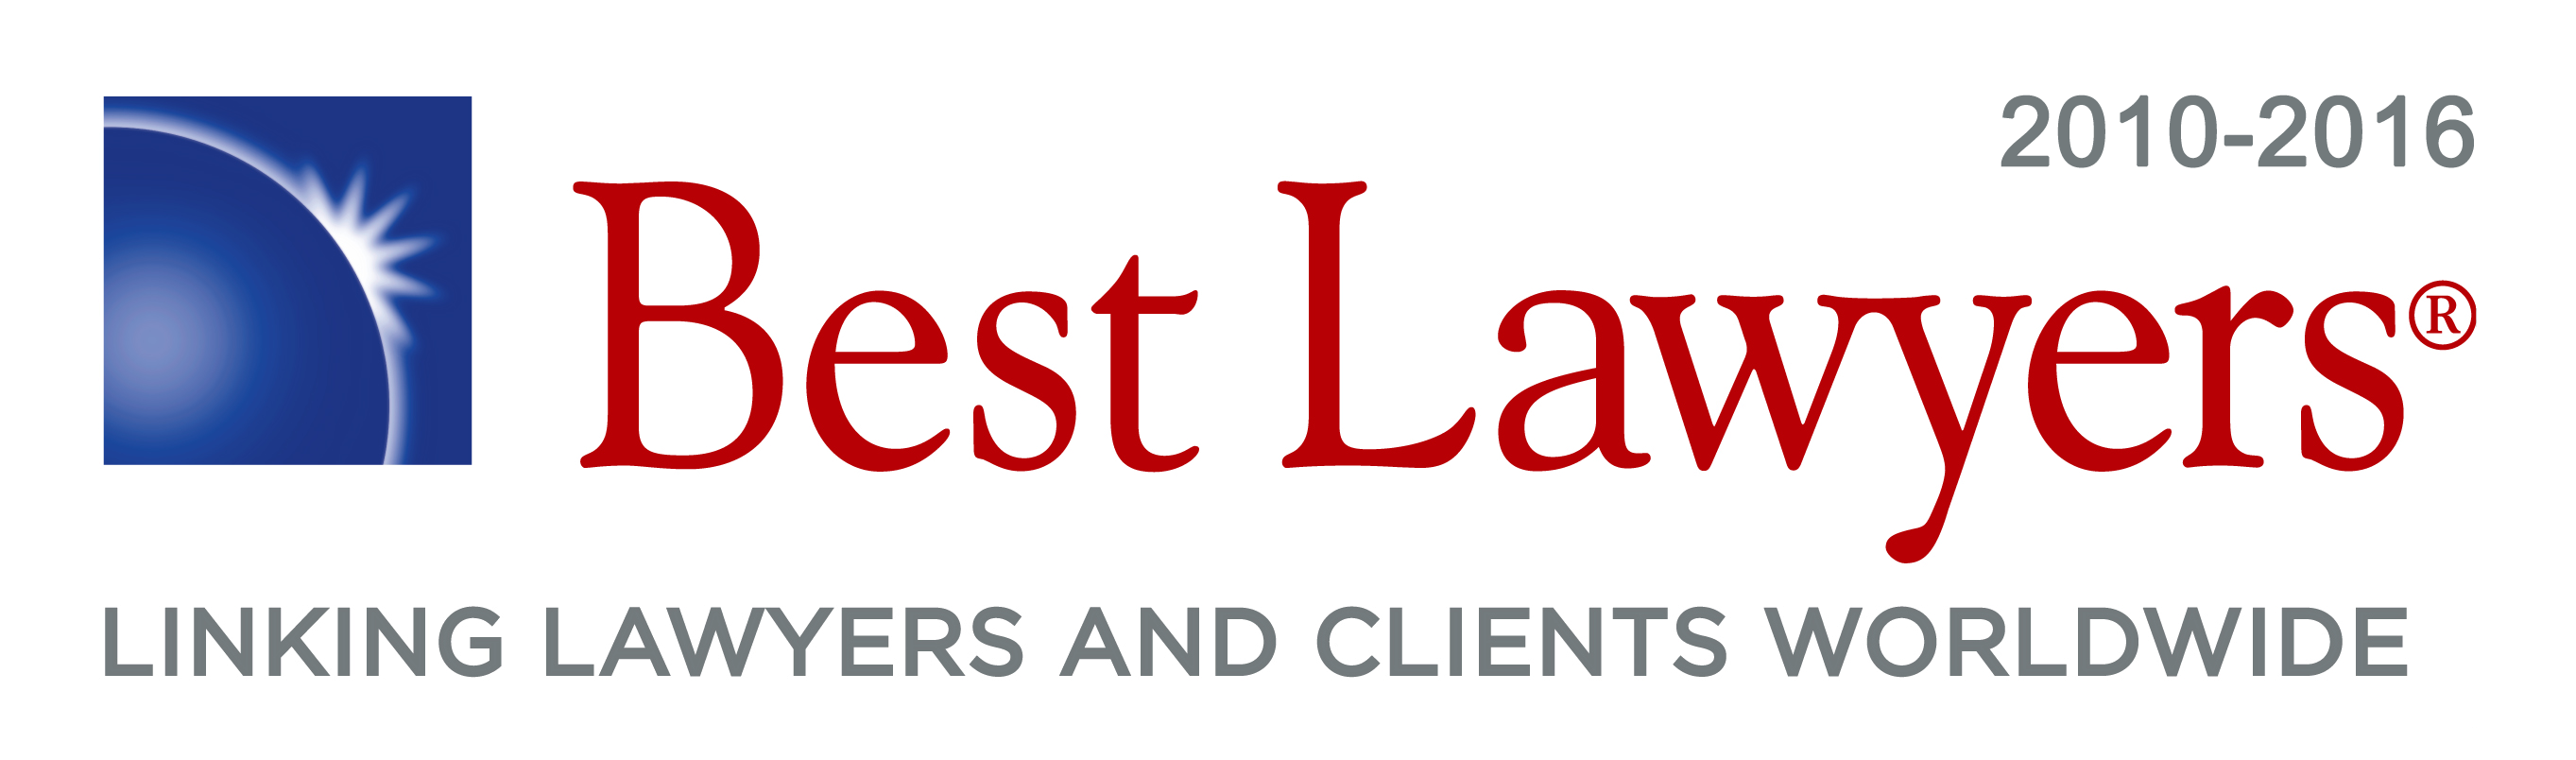 Best rated lawyers in Arizona Tax Law Firm